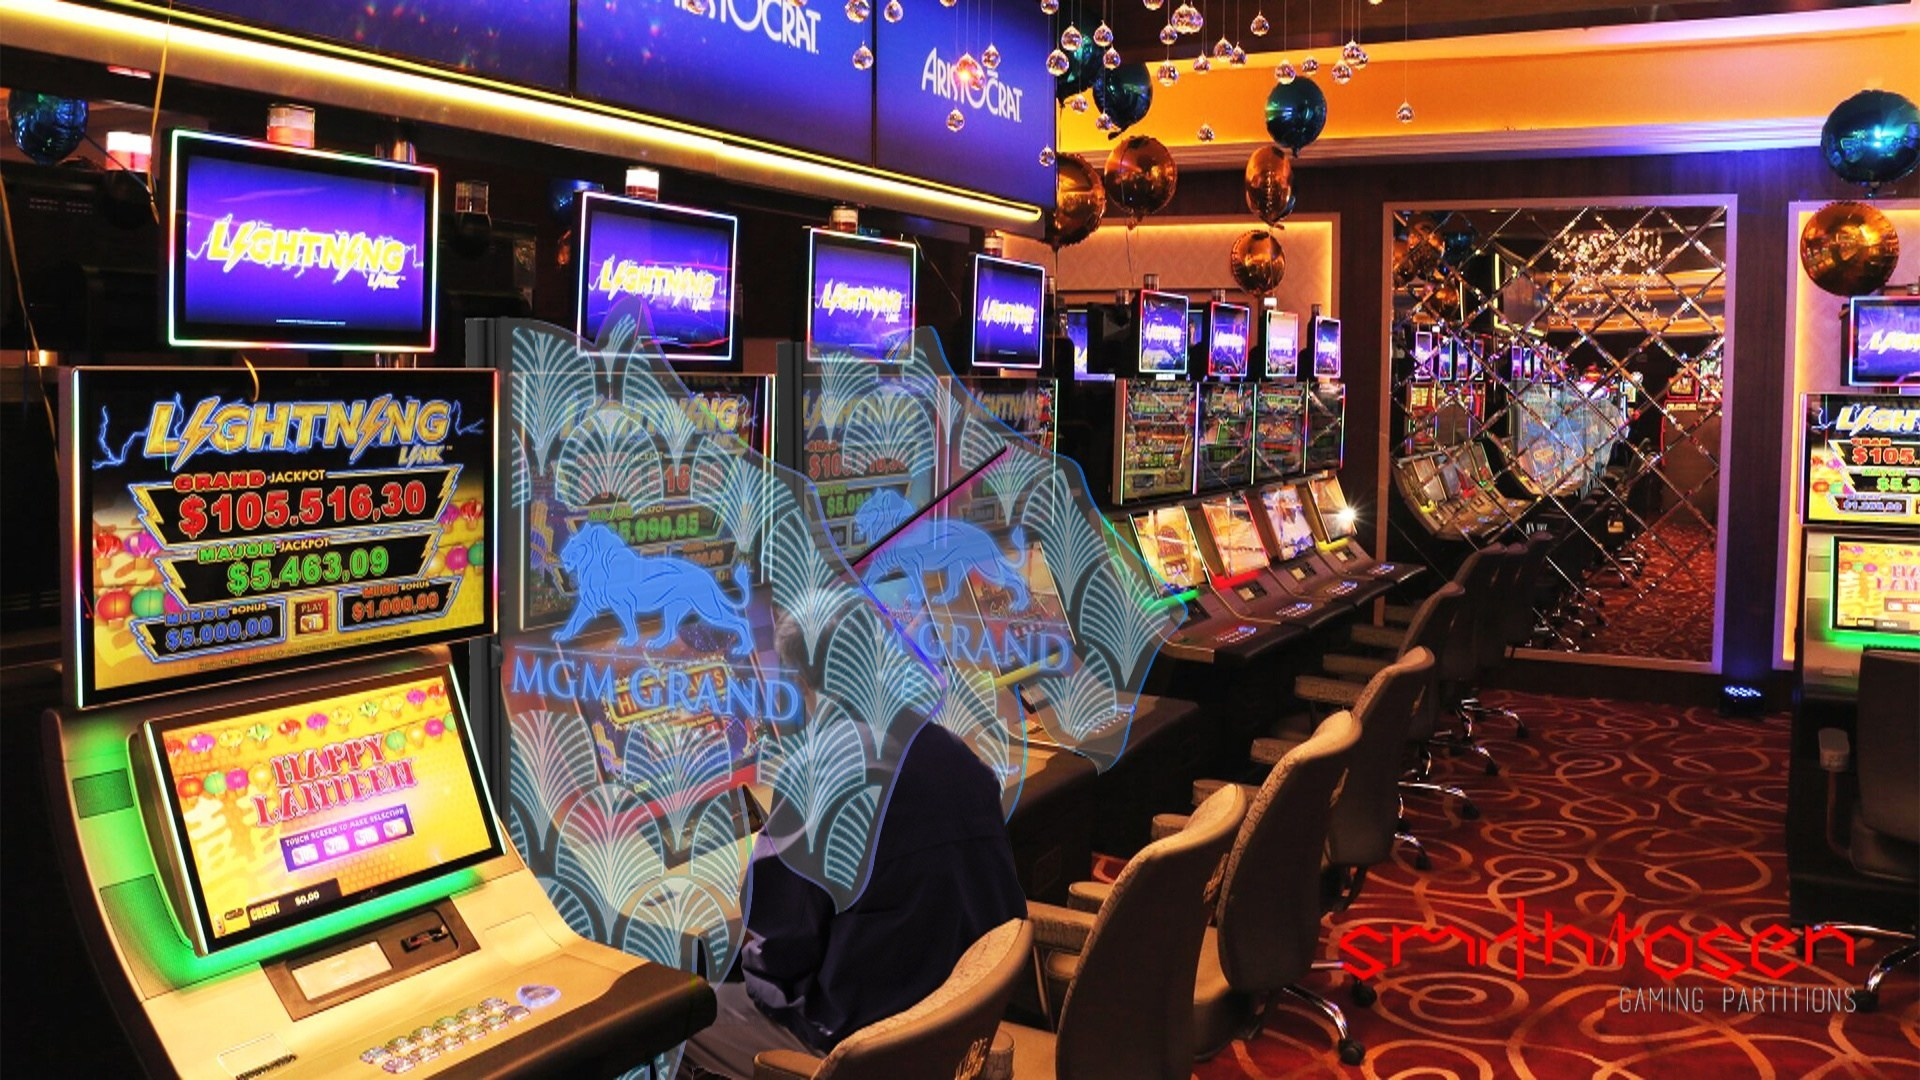 The casino online to enjoy and make a profit